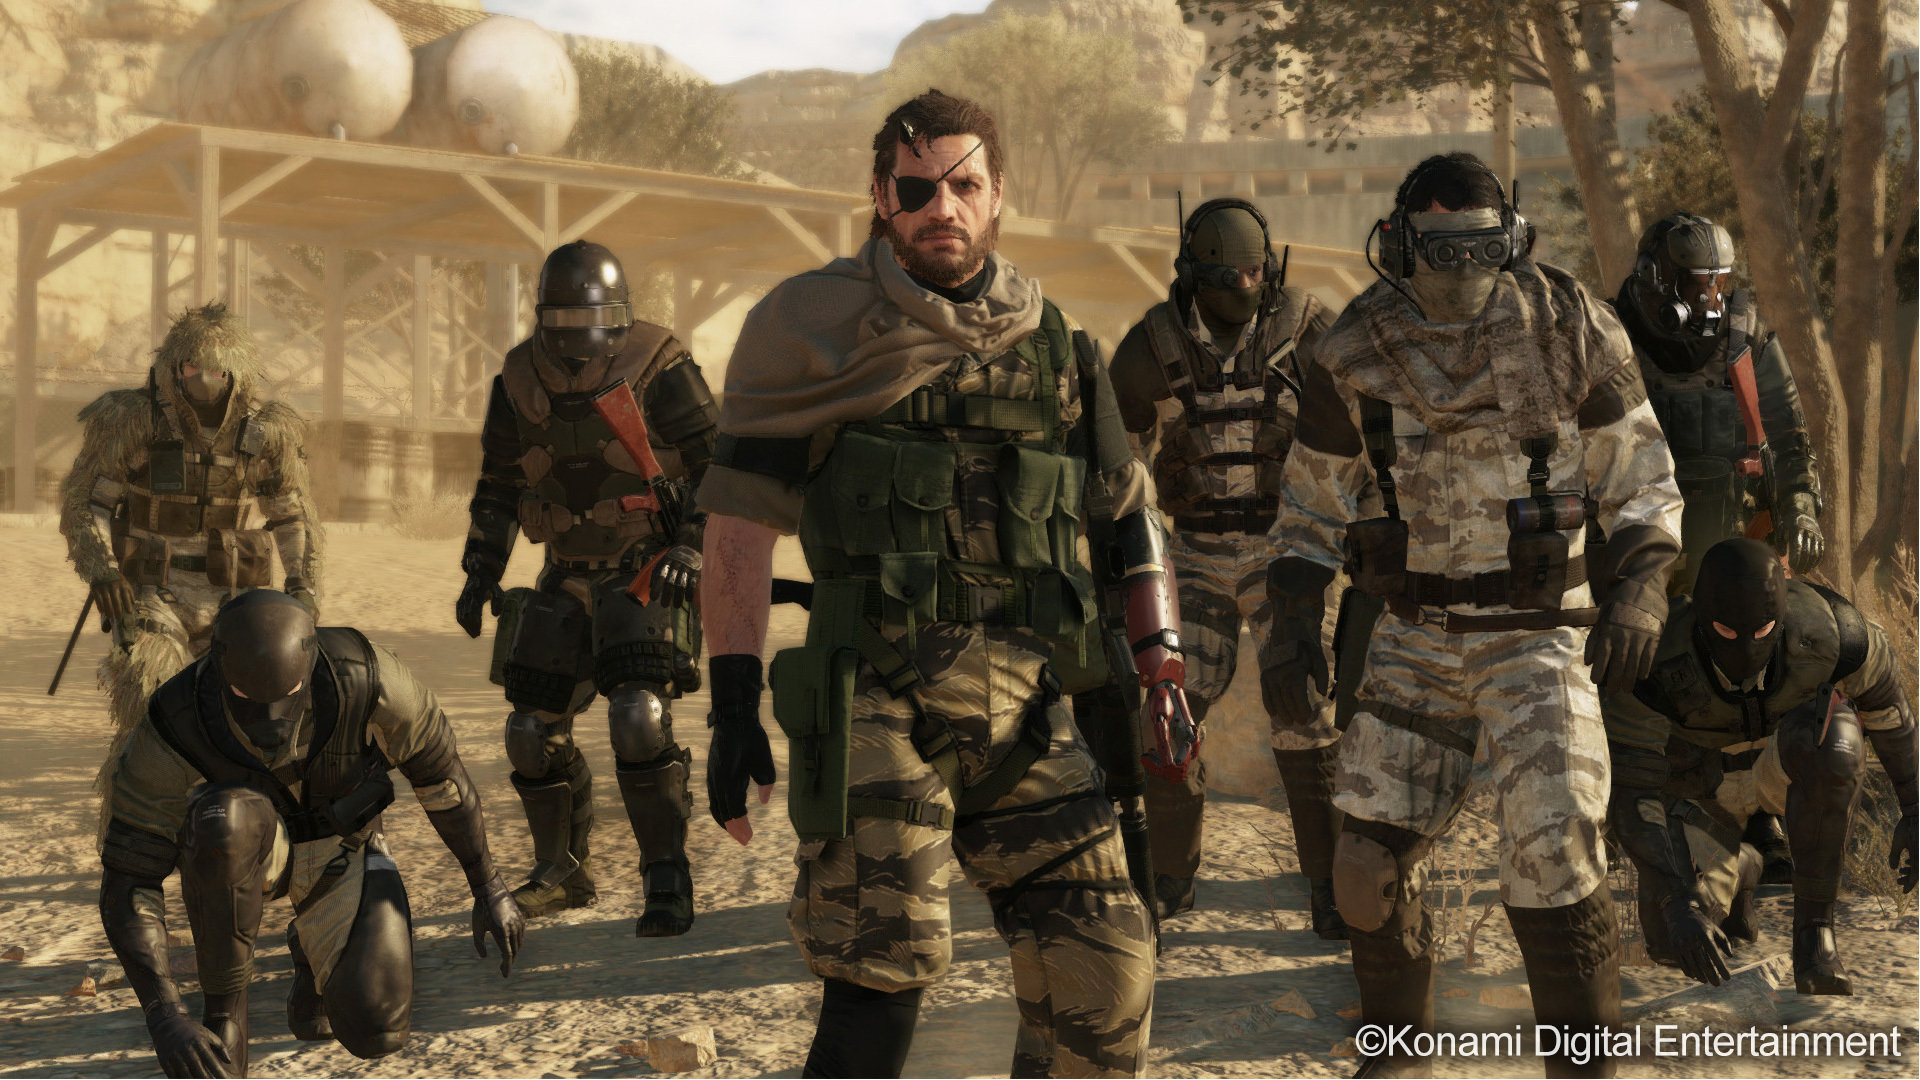 Metal Gear Solid 5 V The Phantom Pain Mgsv 5 Wallpapers Hd